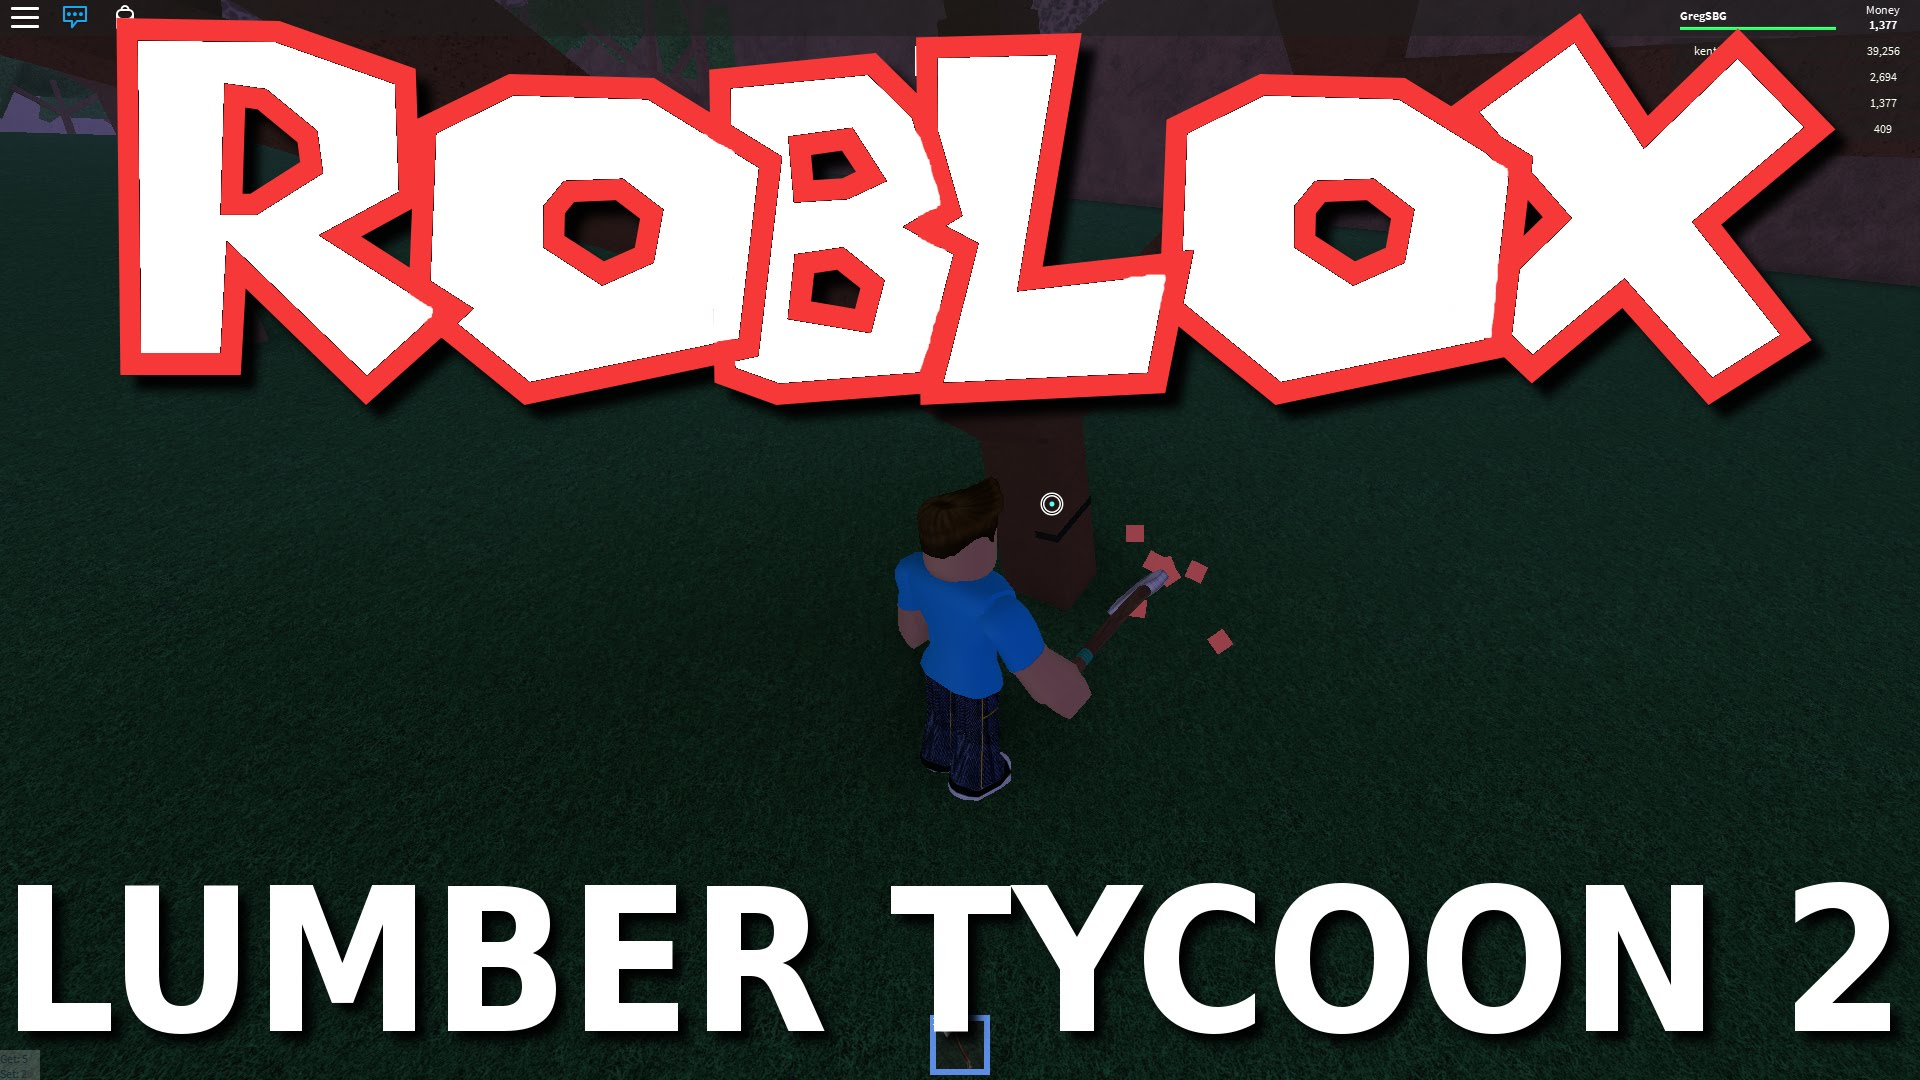 Gaming Roblox Report Learn About The Game Taking Over The Teenage